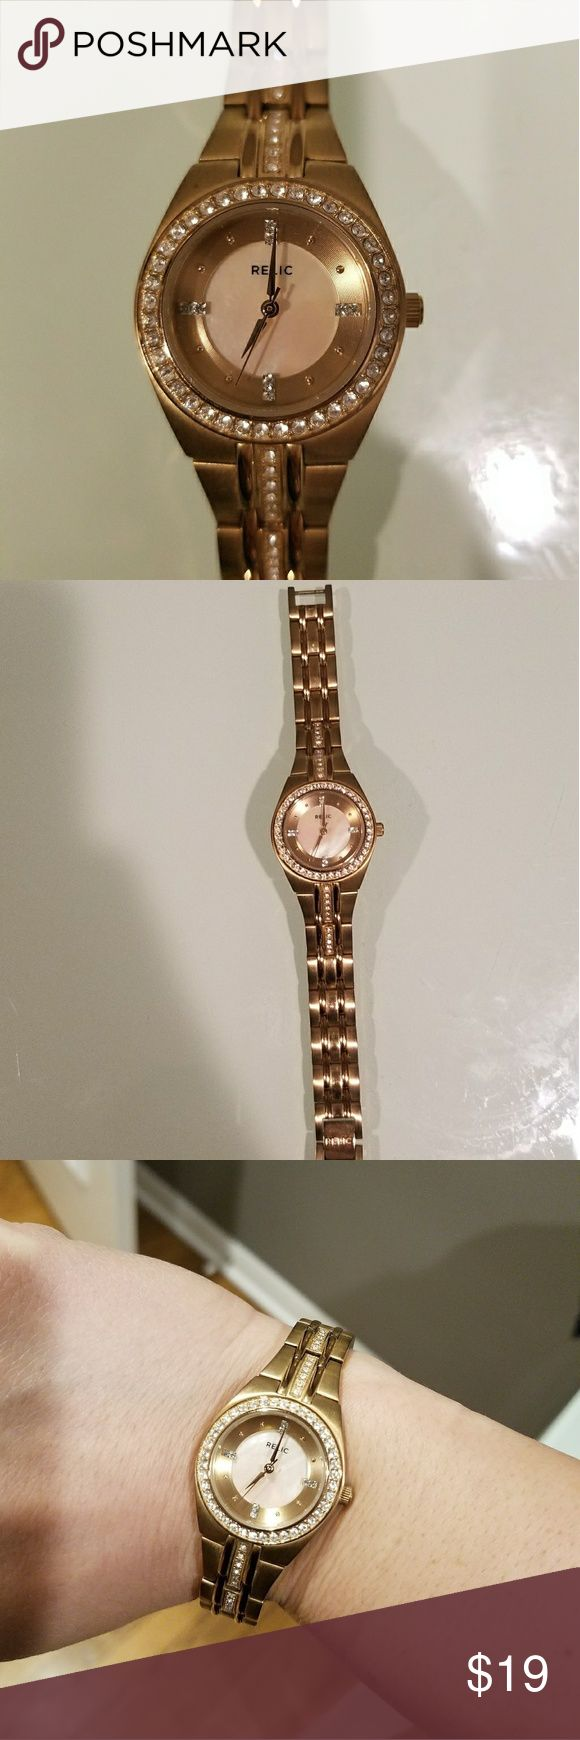 Relic Women's Crystal Watch, rose gold Add dazzling sparkle to any ensemble with this women's Relic watch.Features Water resistance: 30 meters Case & Display Crystal-accented, rose gold-tone dial Rose gold-tone hands, markers & Roman numerals Face cover: mineral crystal Case: rose gold-tone metal Caseback: stainless steel Relic Accessories Watches